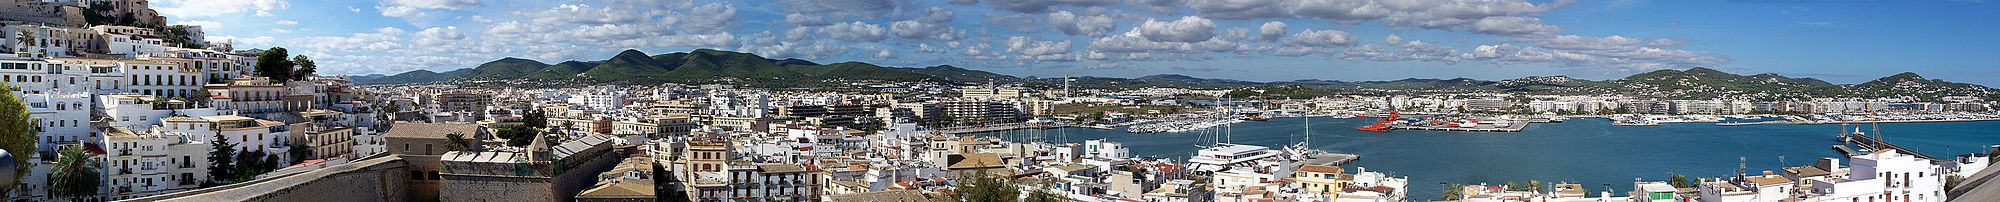 Eivissa Harbor and City.jpg